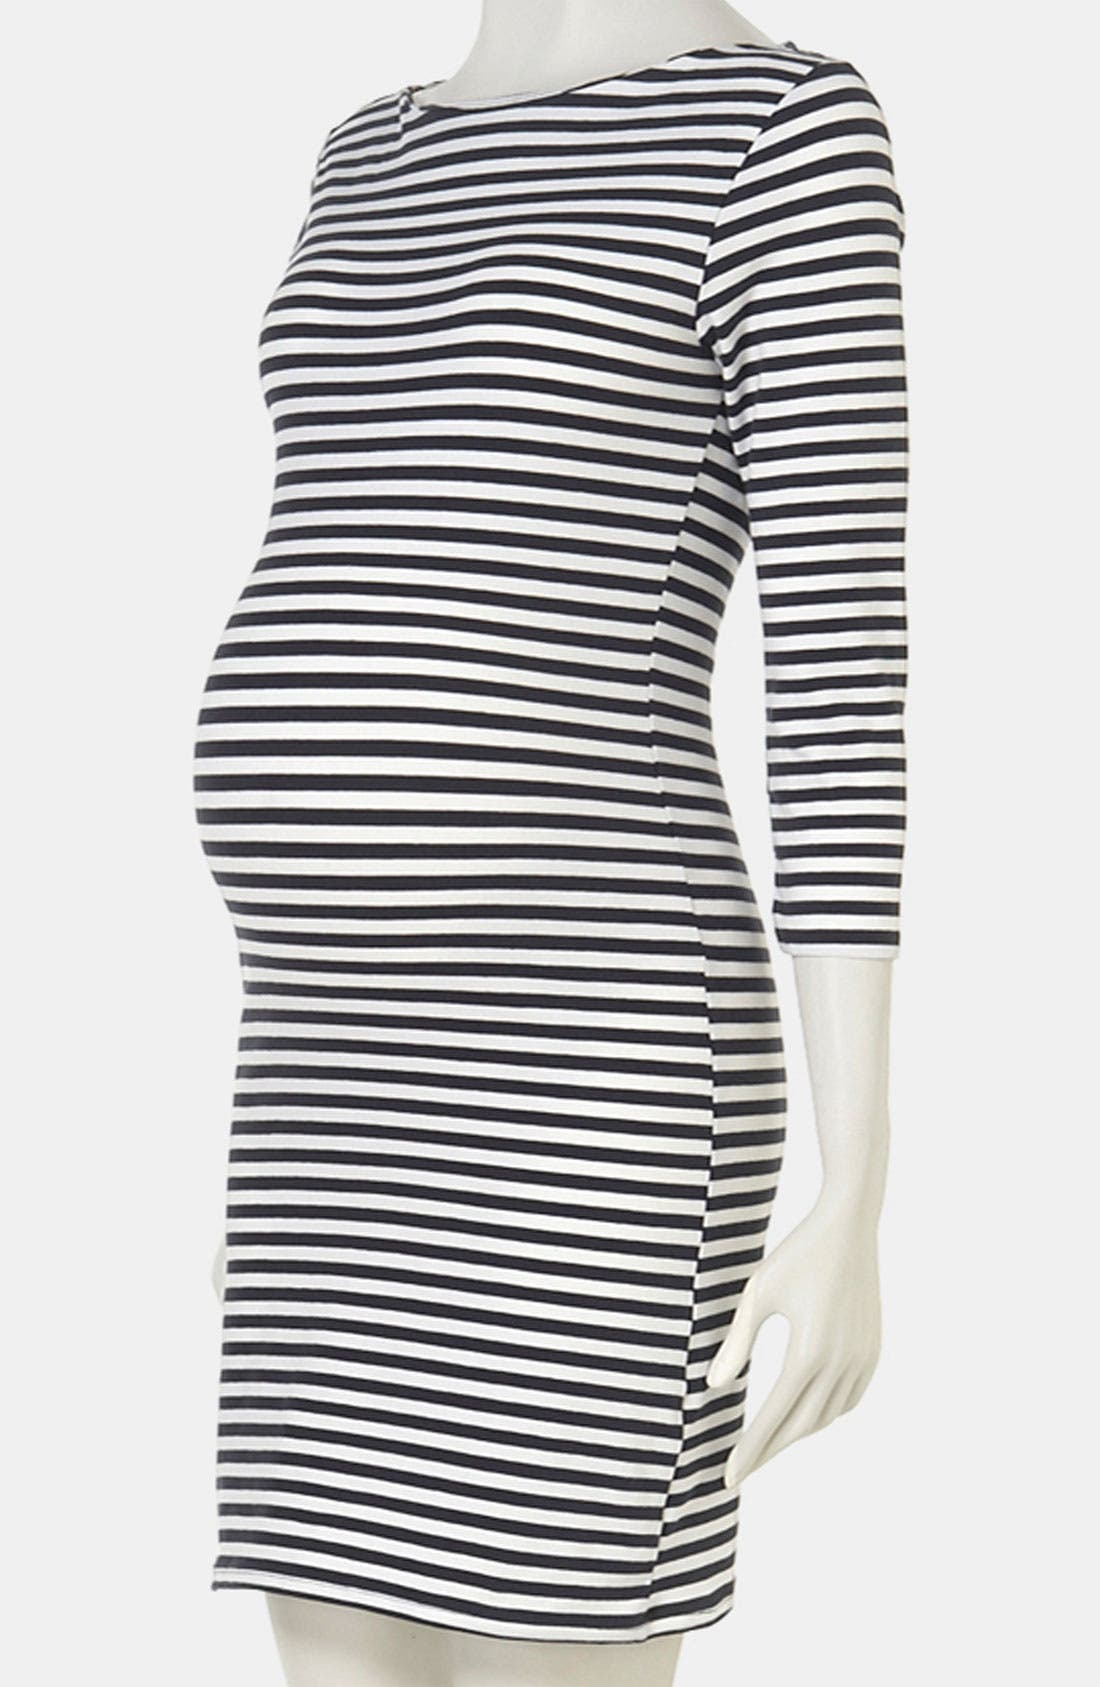 Alternate Image 1 Selected - Topshop Stripe Maternity Dress